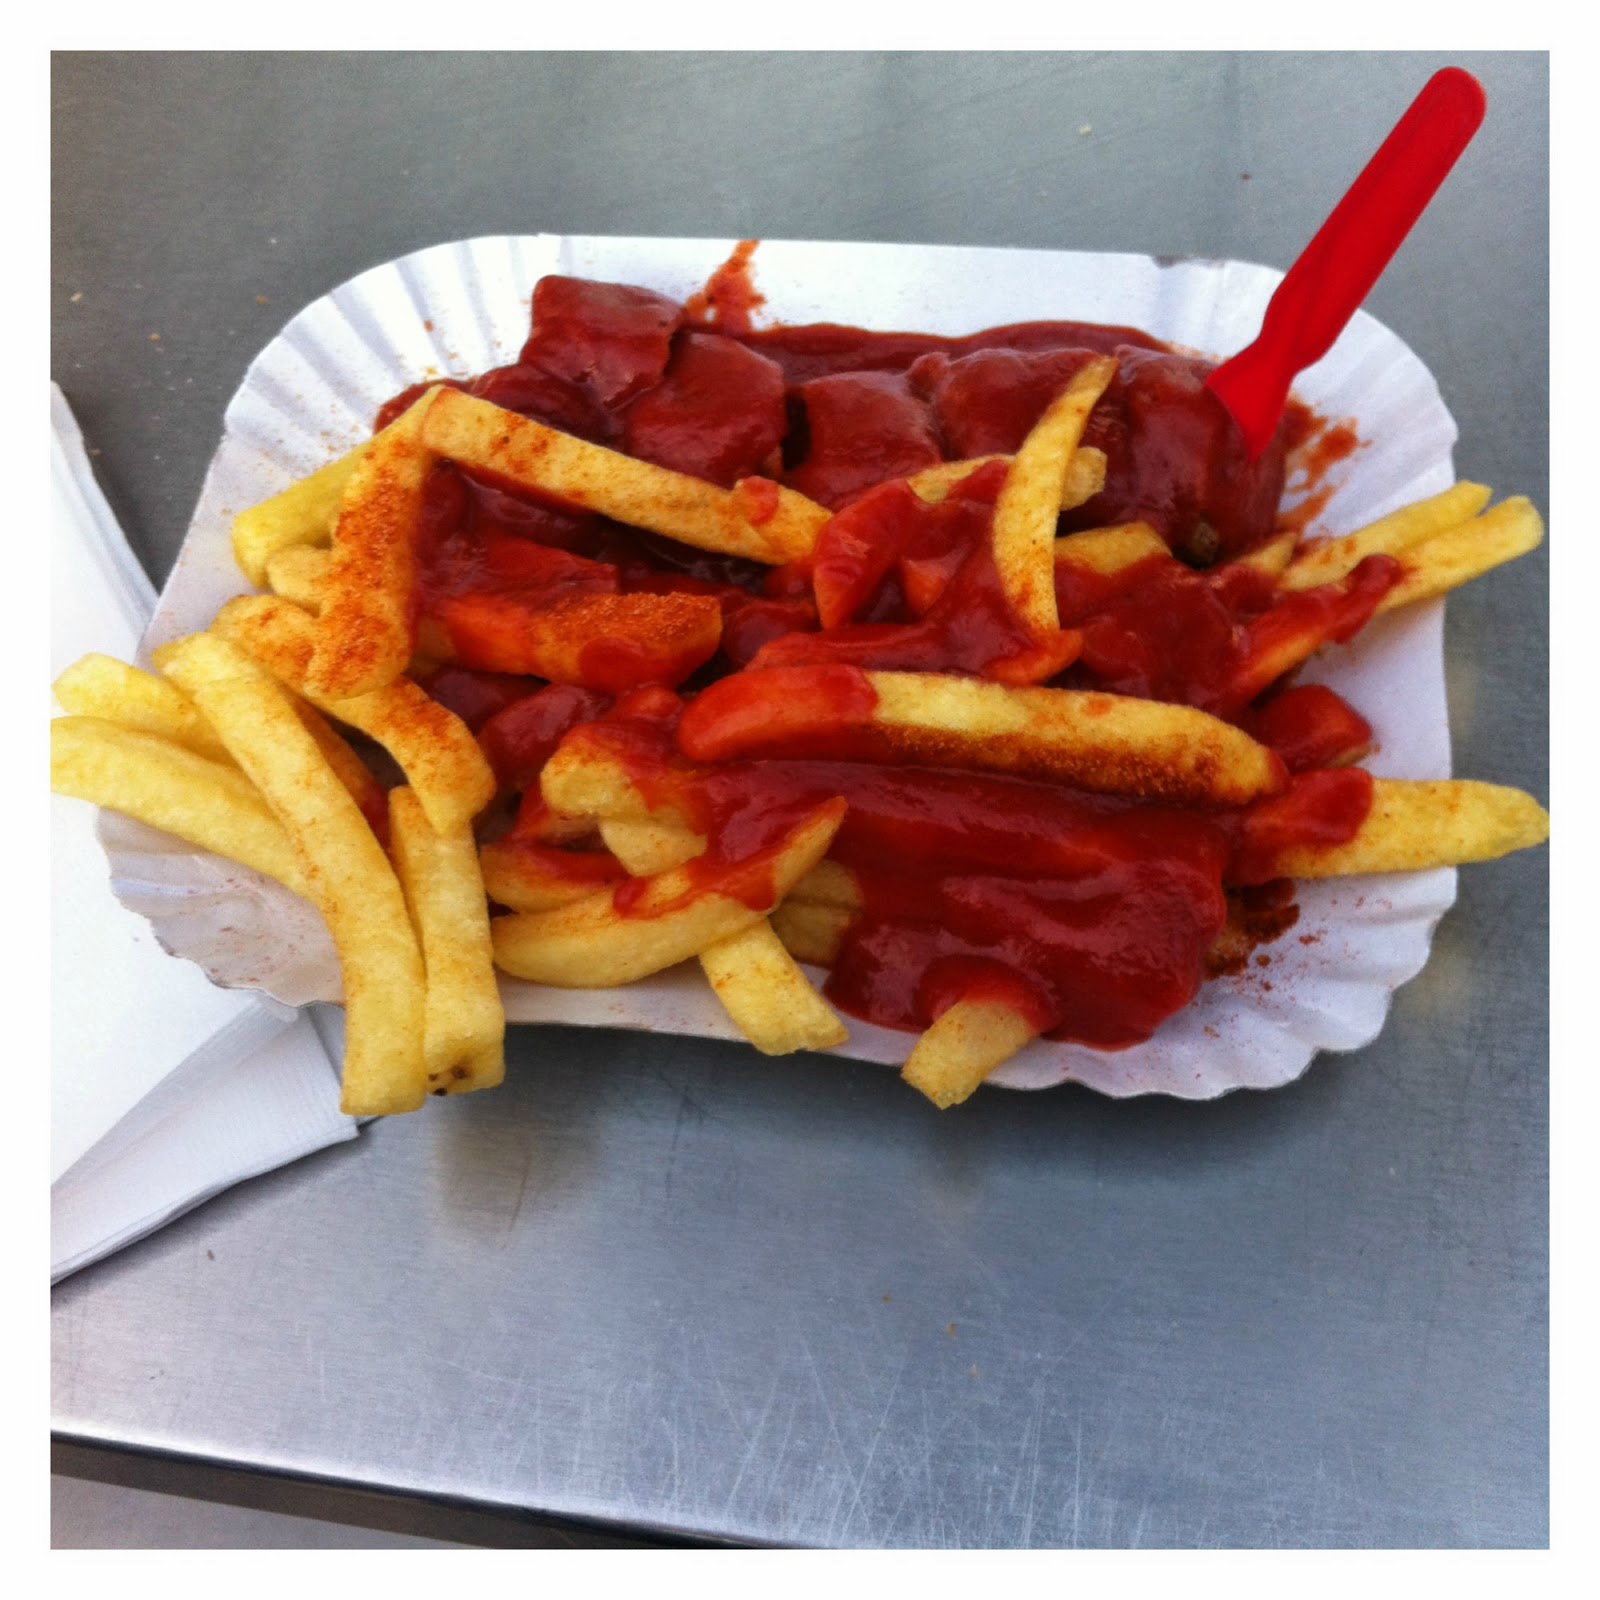 Currywurst do Curry 36 - Zoologischer Garten em Berlim